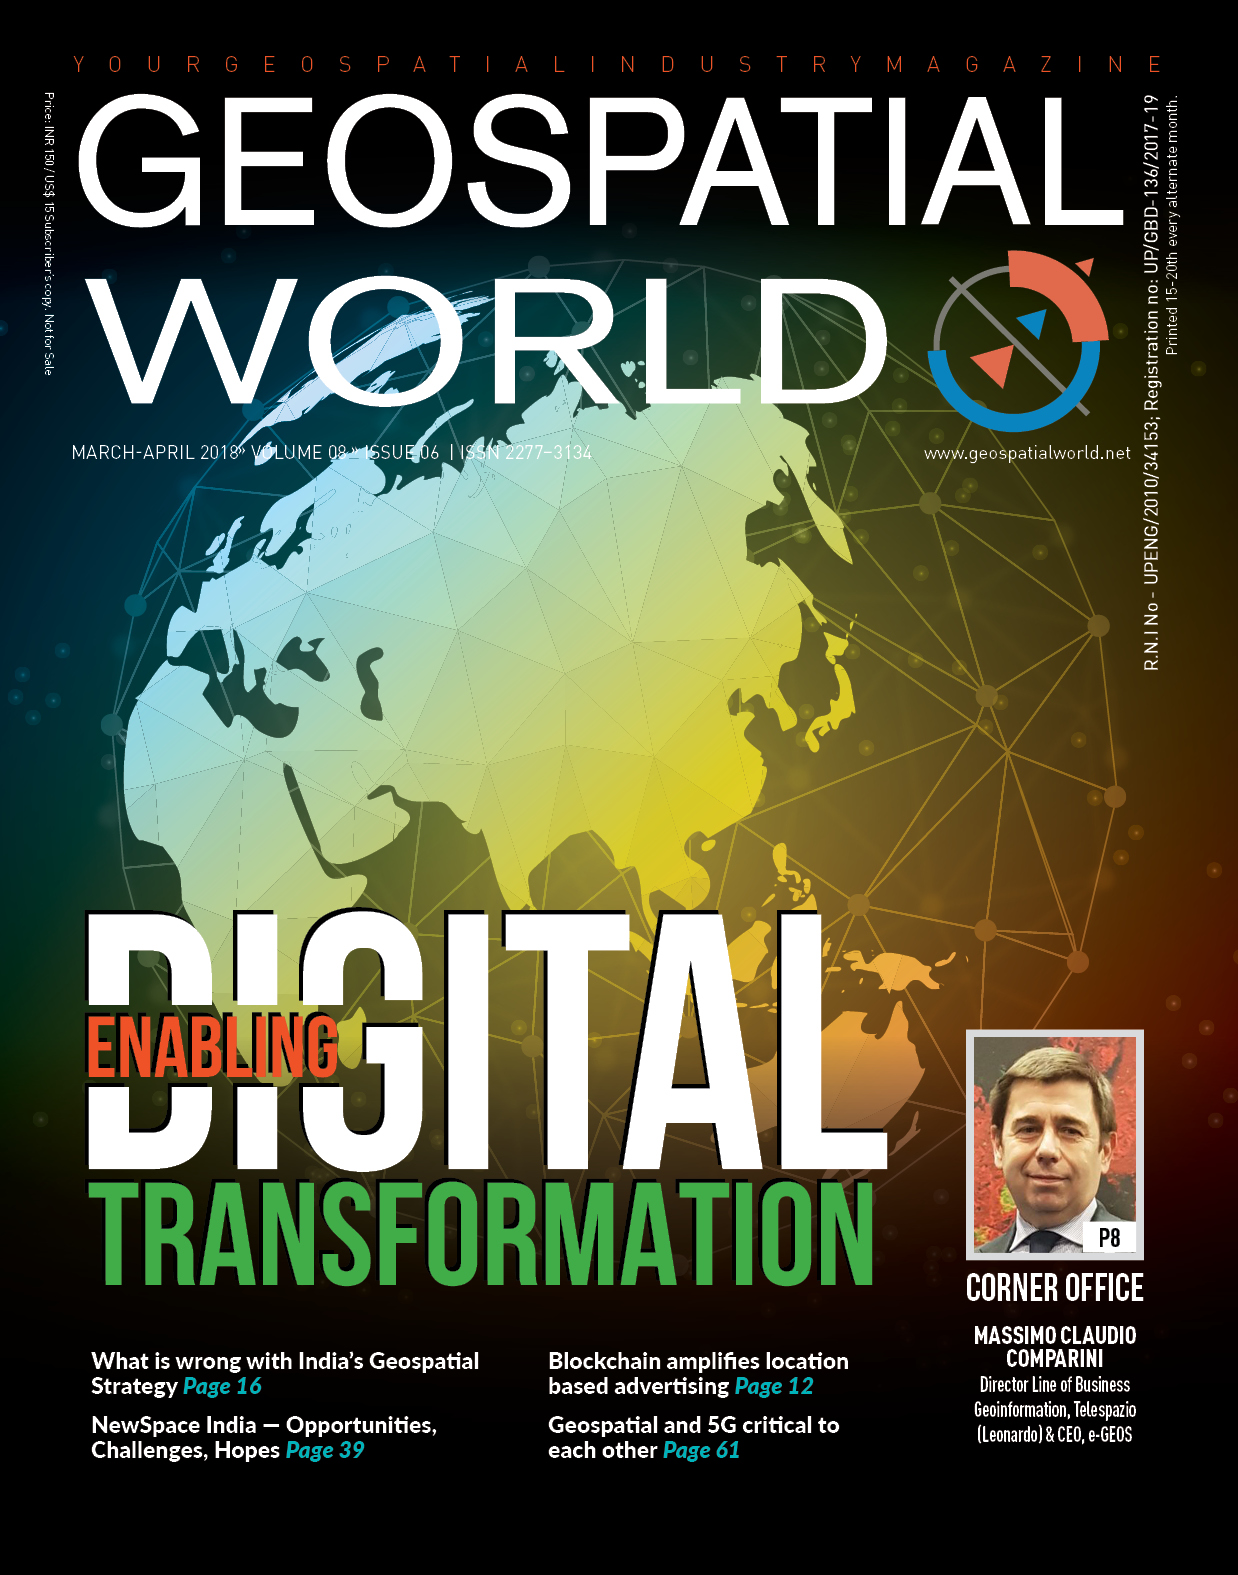 Geospatial World Magazine March 2018: Enabling Digital Transformation